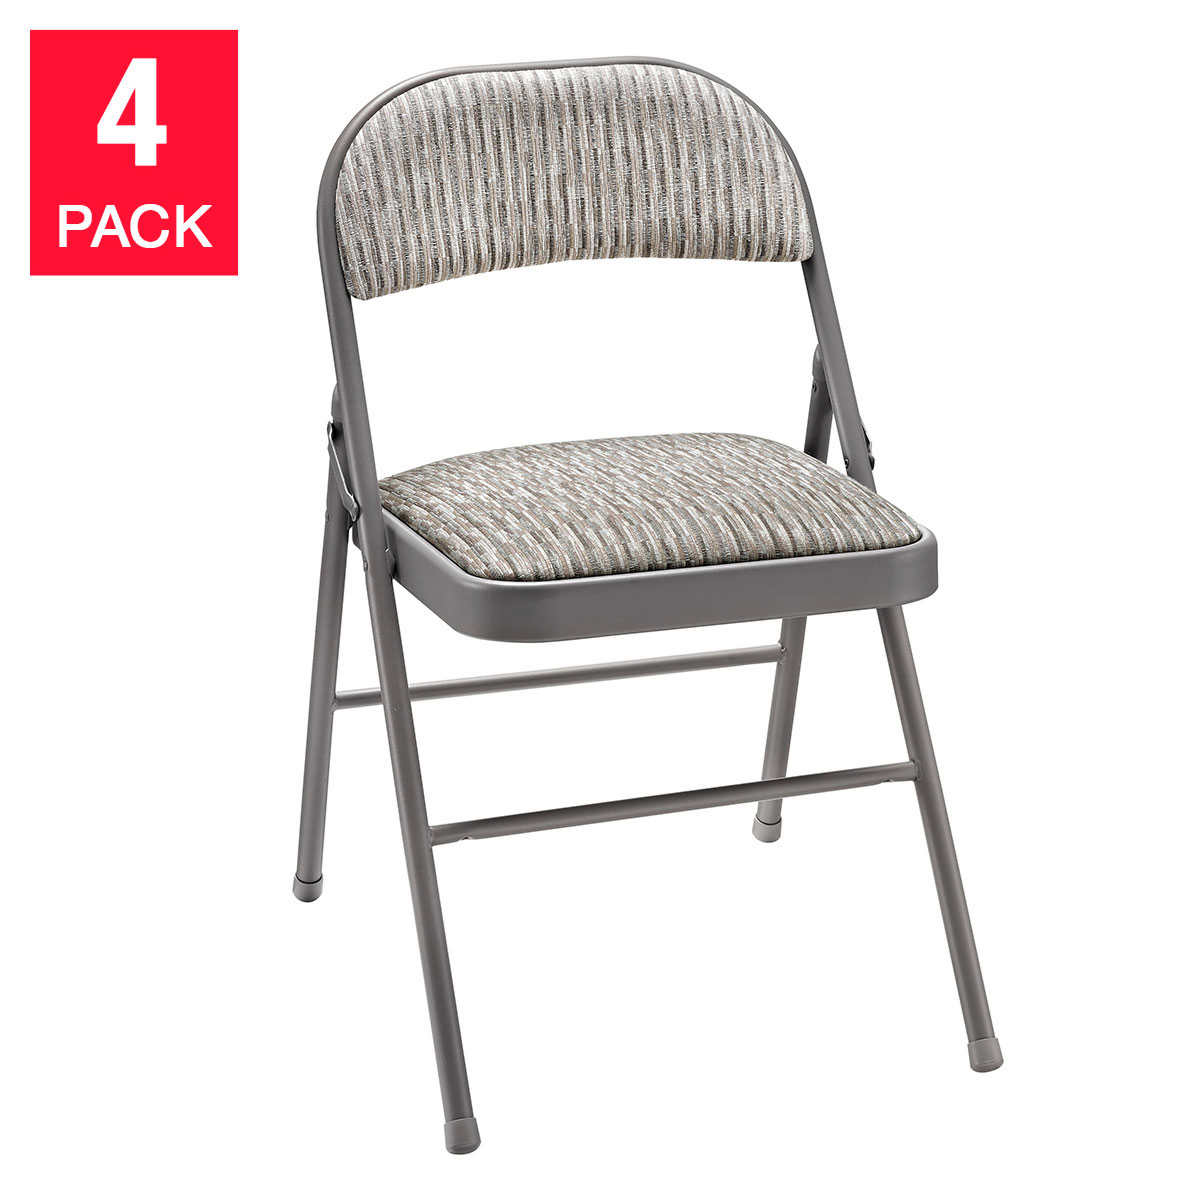 Meco Upholstered Folding Chair, 6-Pack